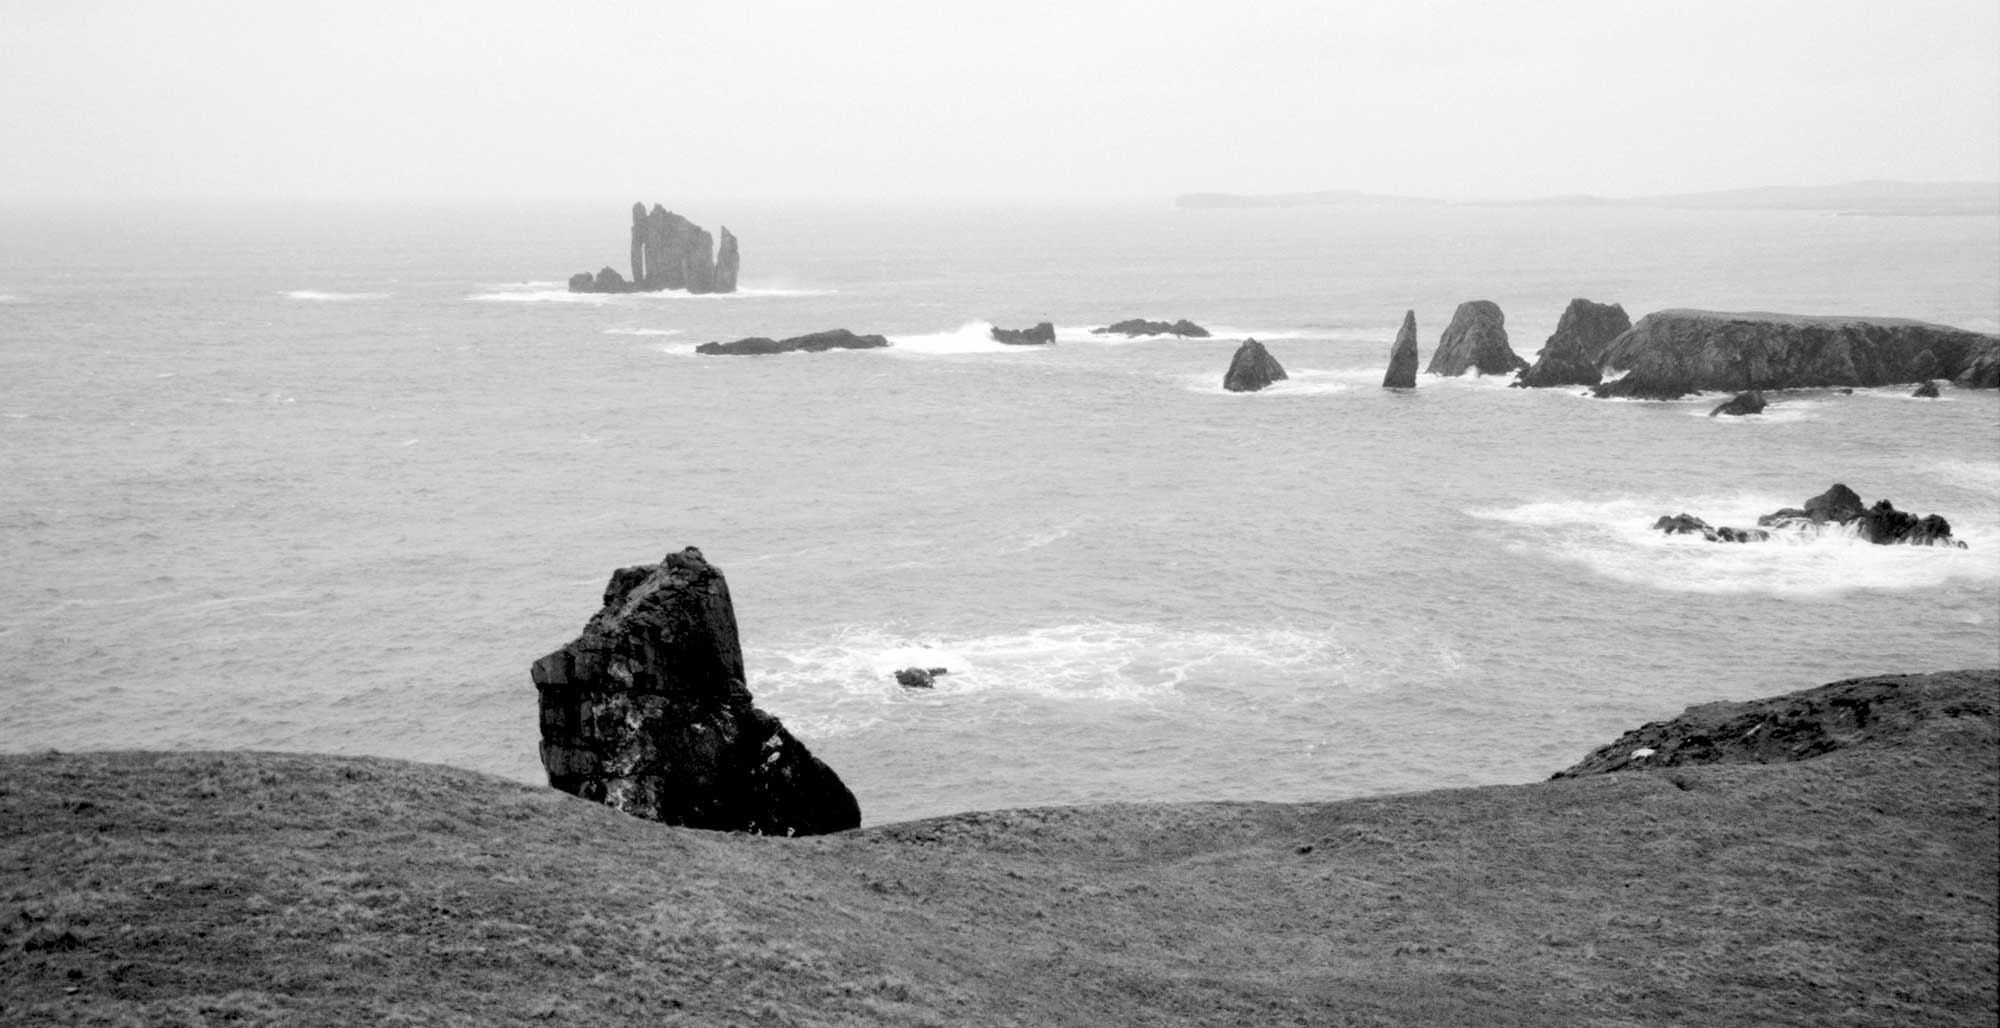 加藤秀 写真展「SHETLAND IN THE LIGHT」